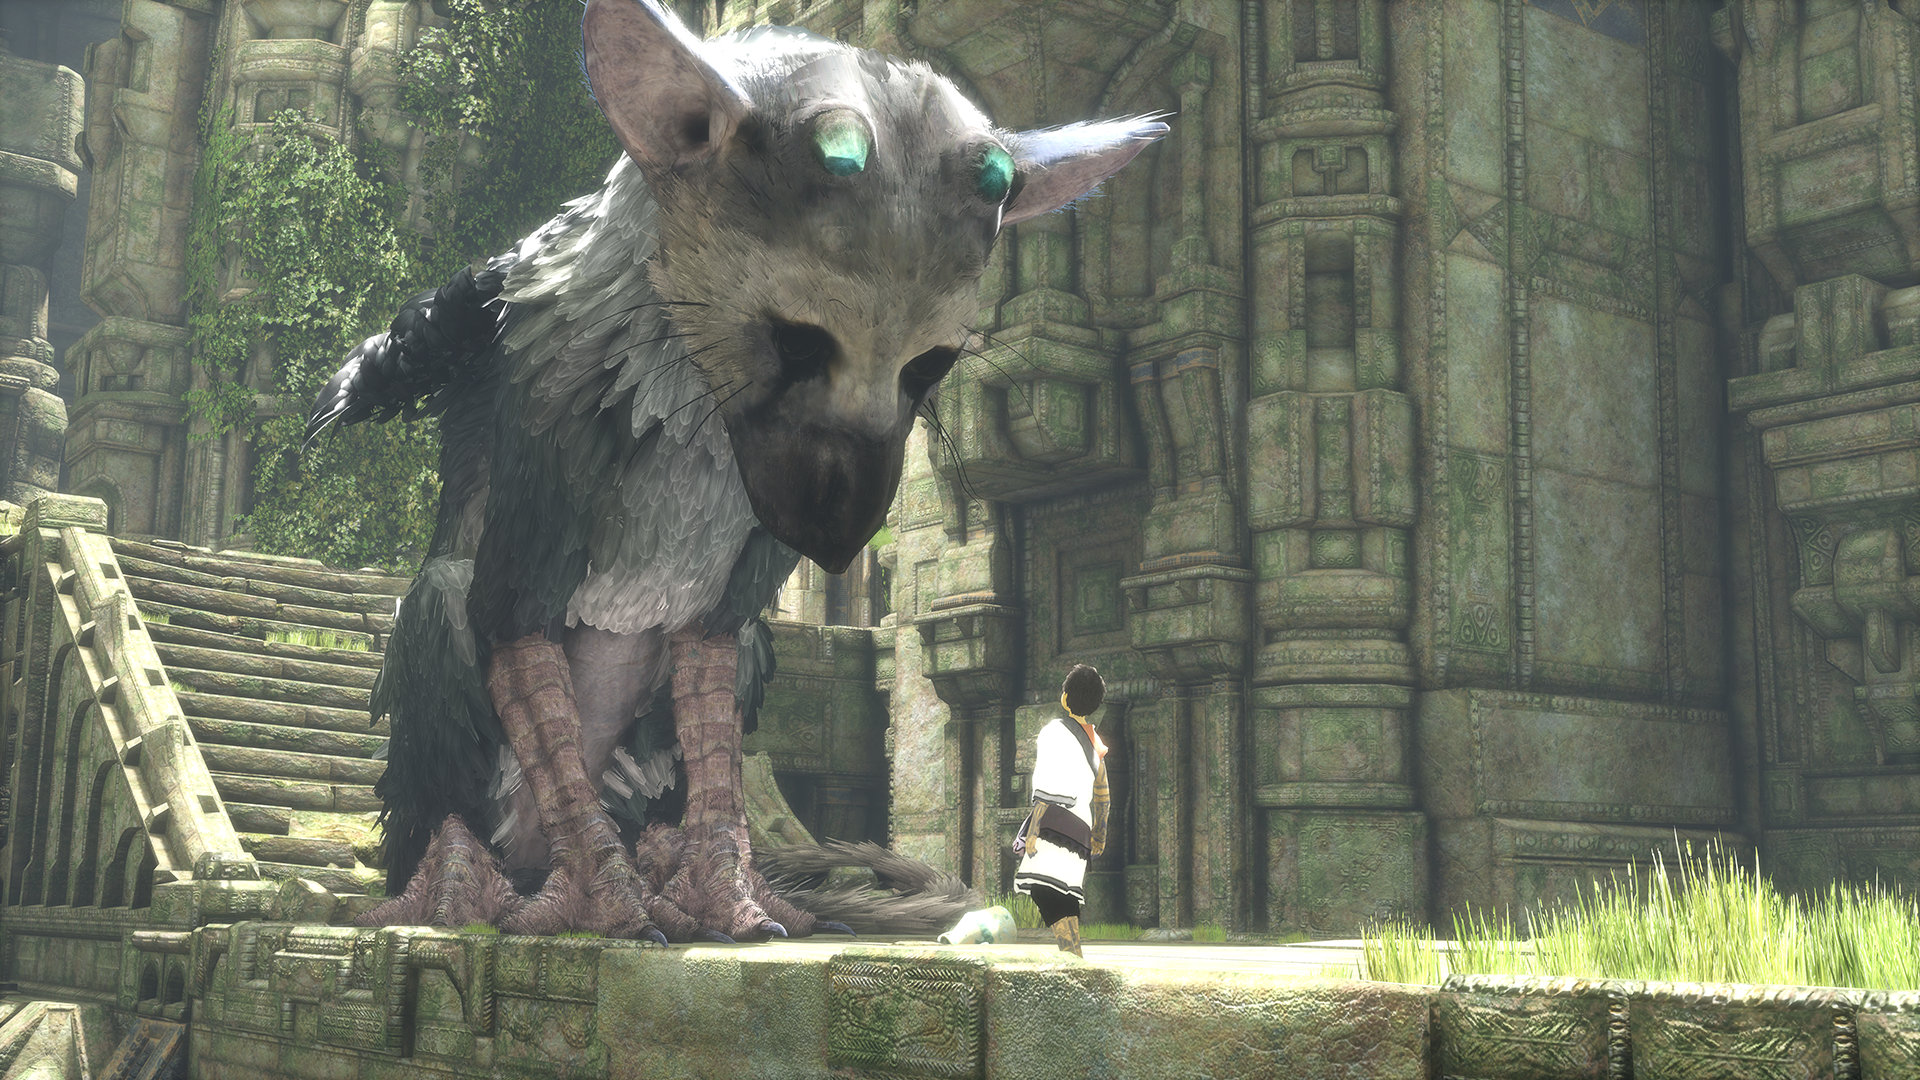 IM1787: The Last Guardian